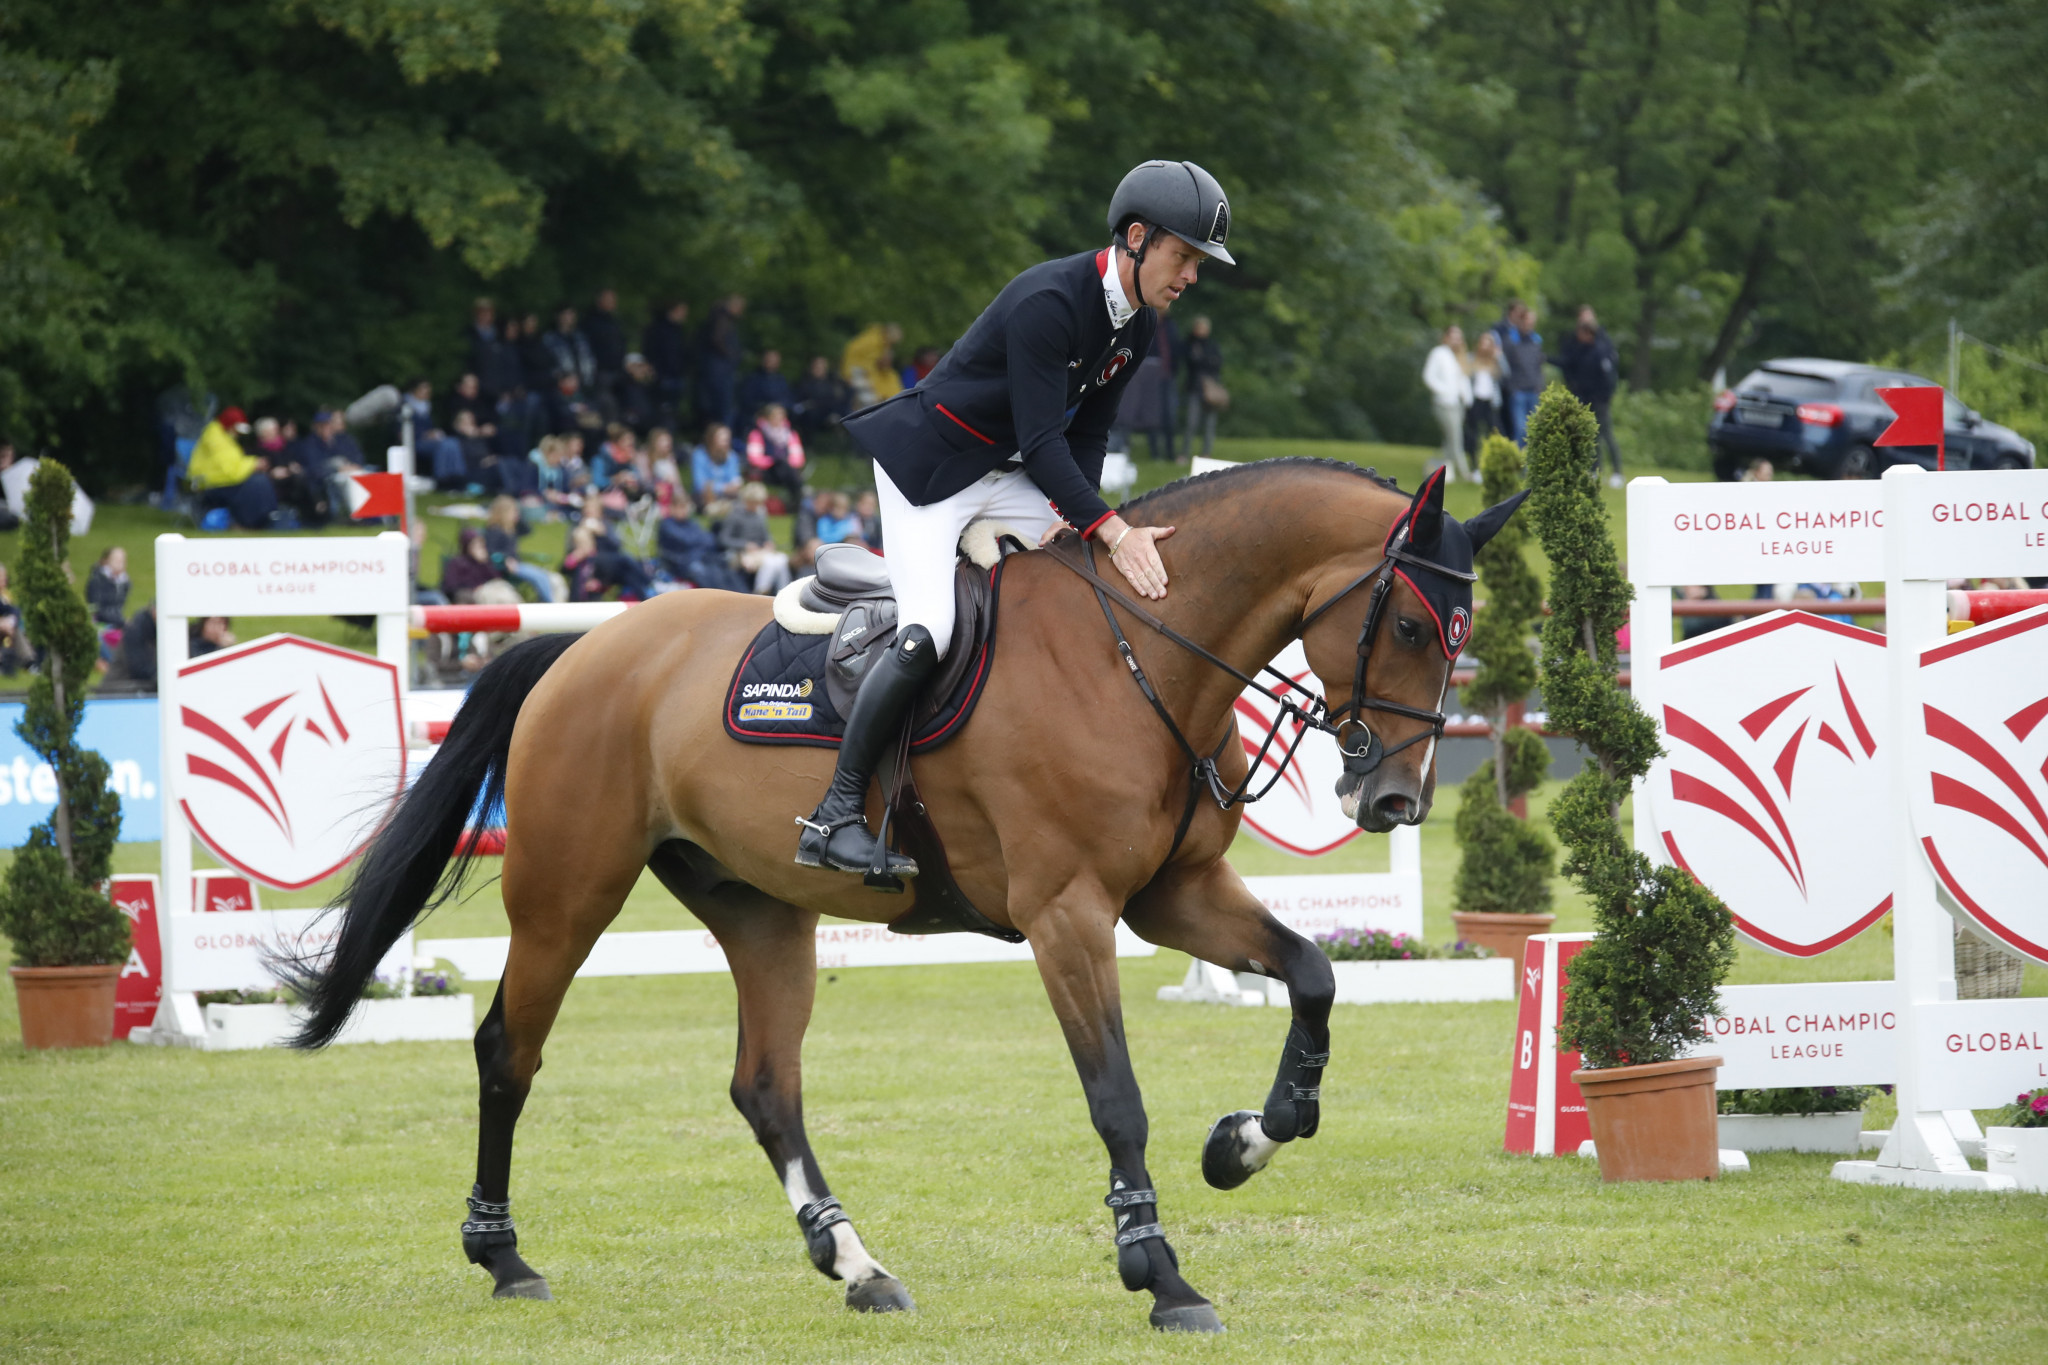 New York Empire favourites to take Longines GCL gold in Hamburg